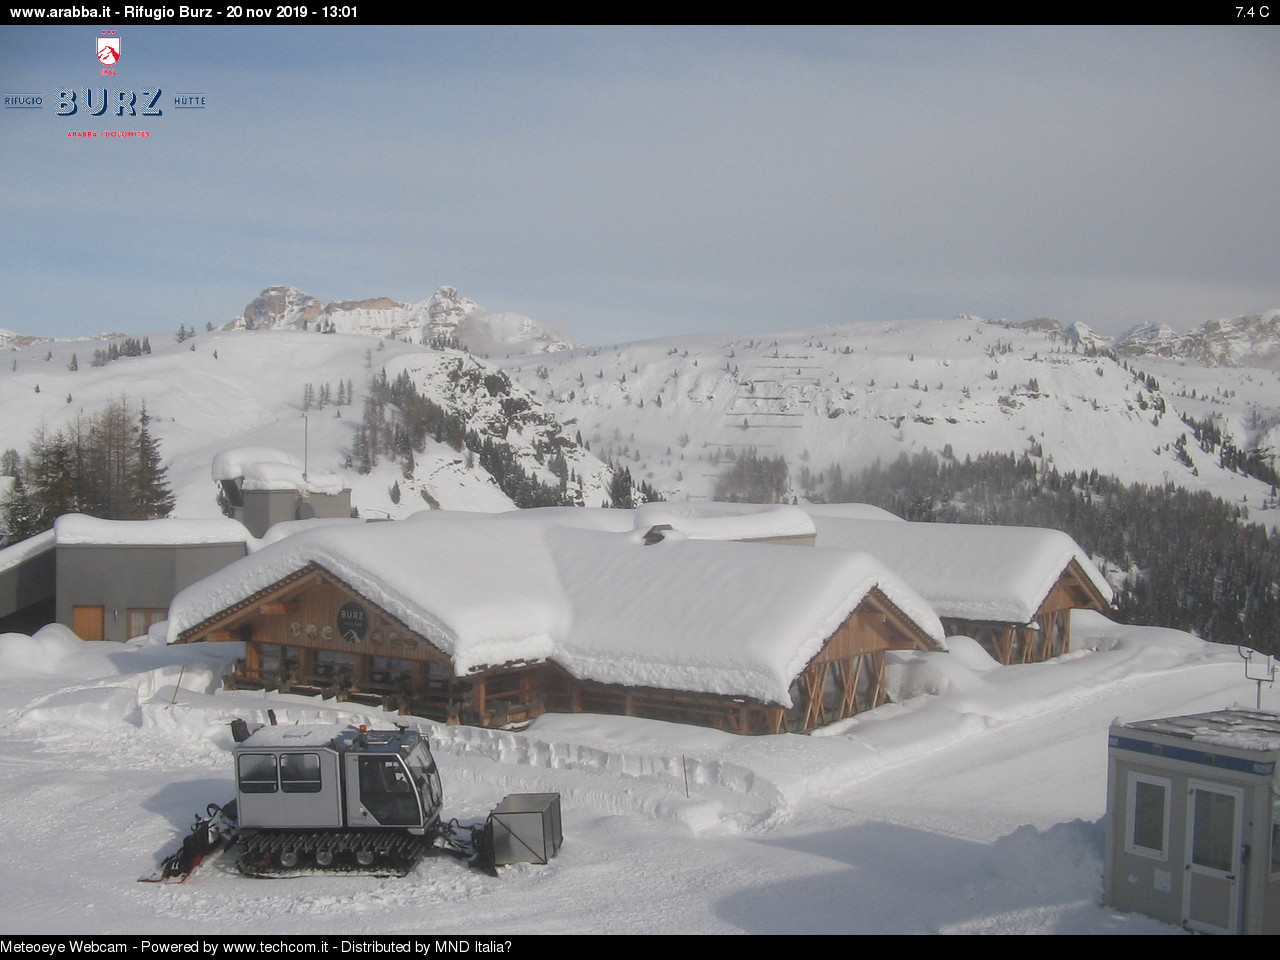 Arabba webcam - Rifugio Burz